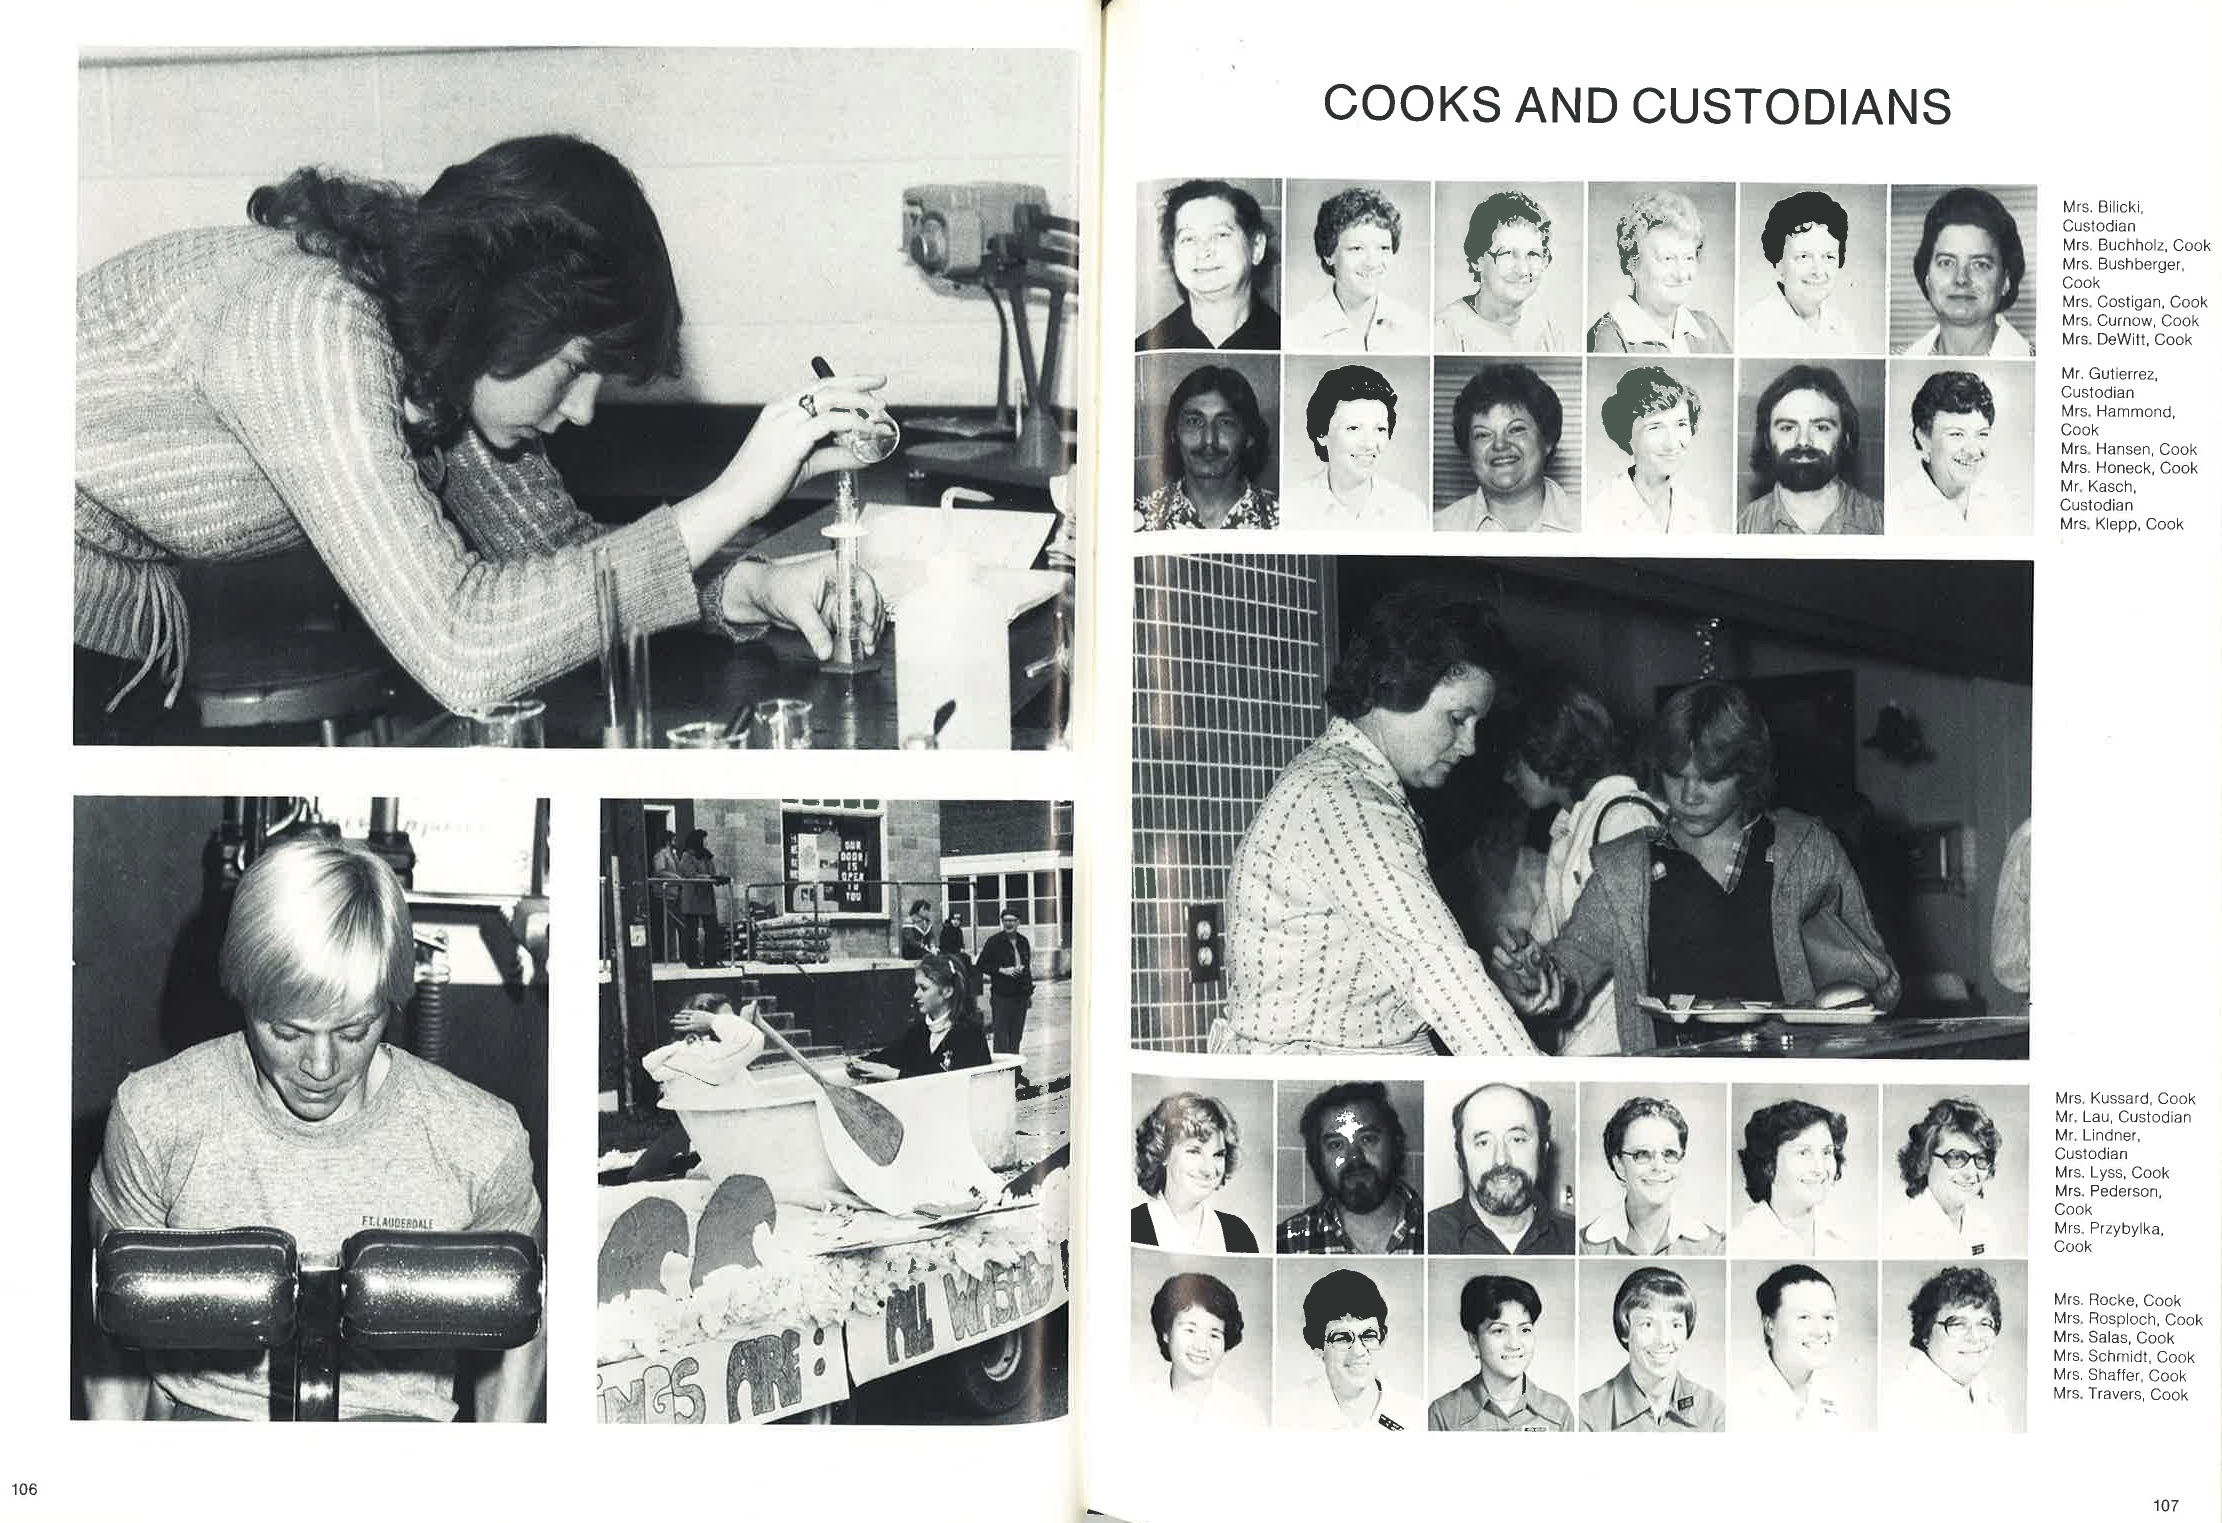 1981_Yearbook_106.jpg